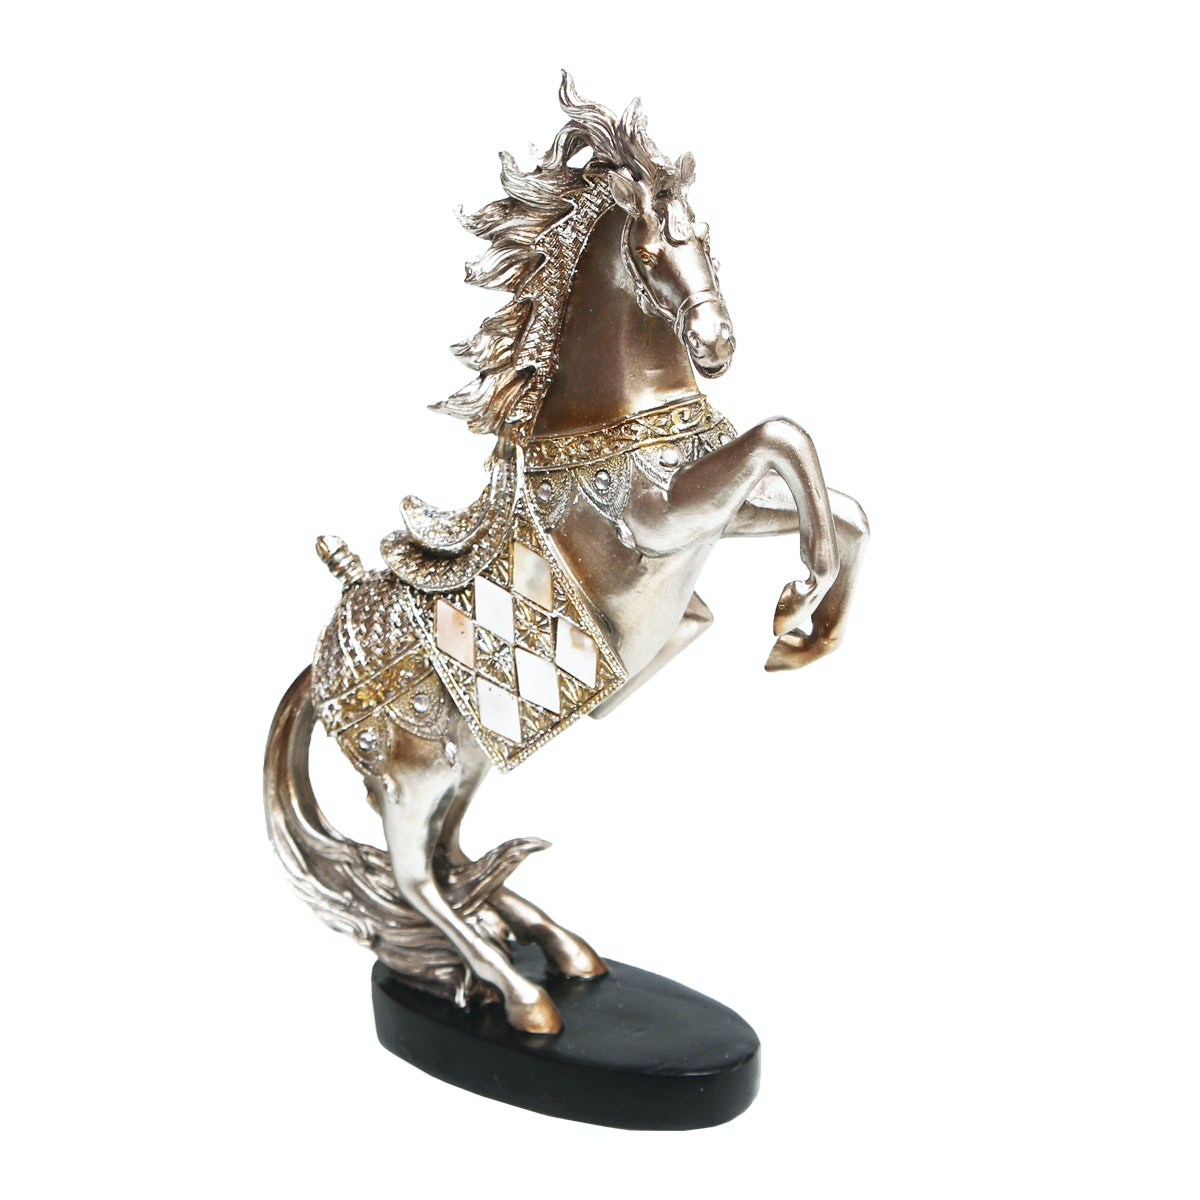 Vivere Object Horsy Silver 19.5x7x30.5cm